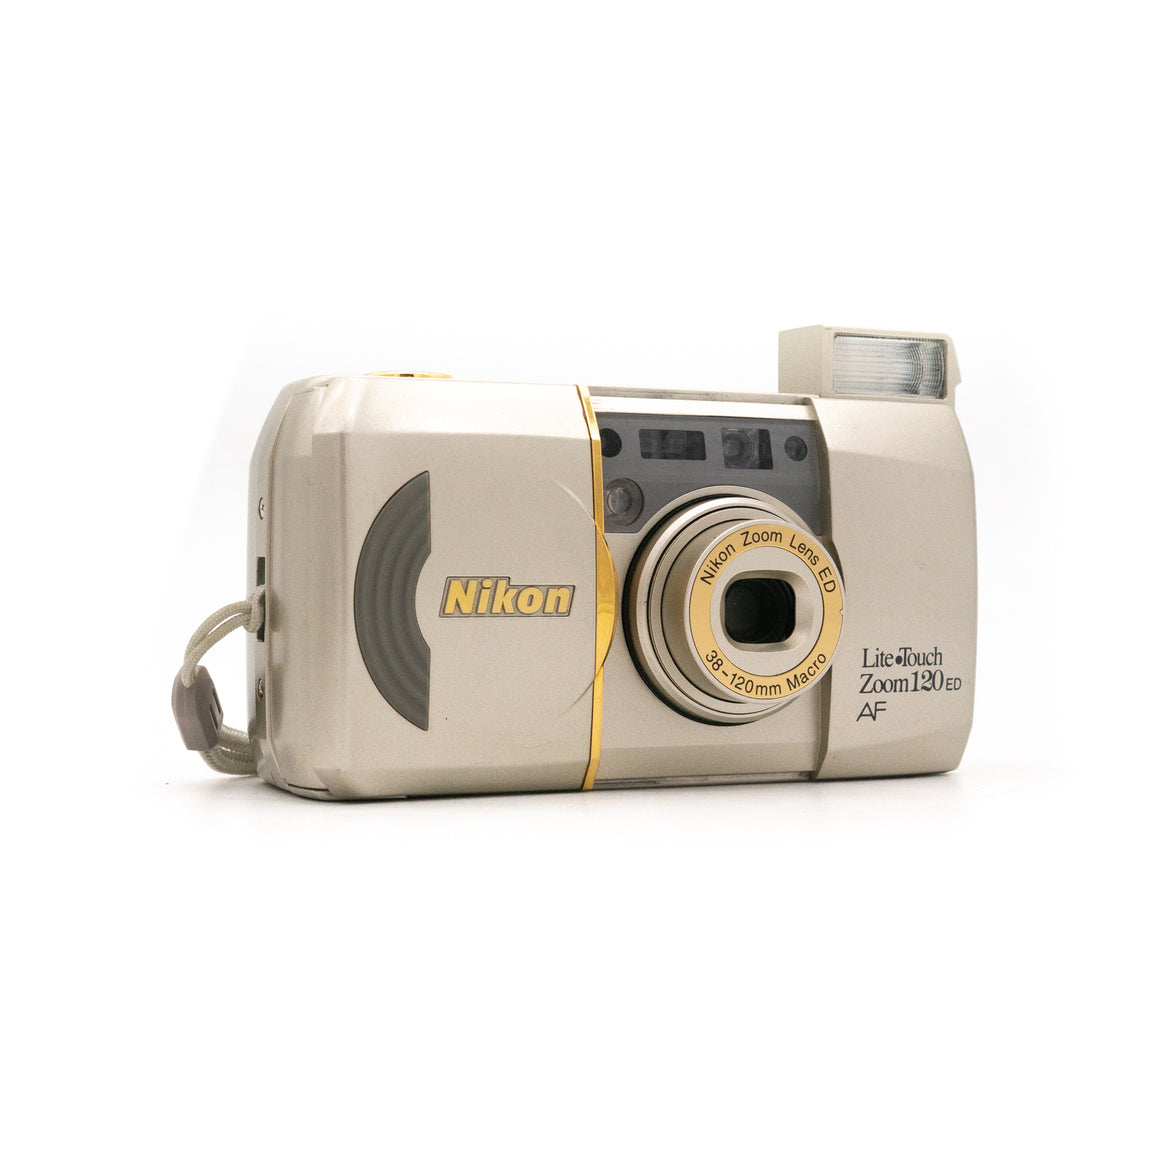 Nikon Lite Touch Zoom 120 Point & Shoot Camera with Nikon 38 - 120mm Zoom Lens